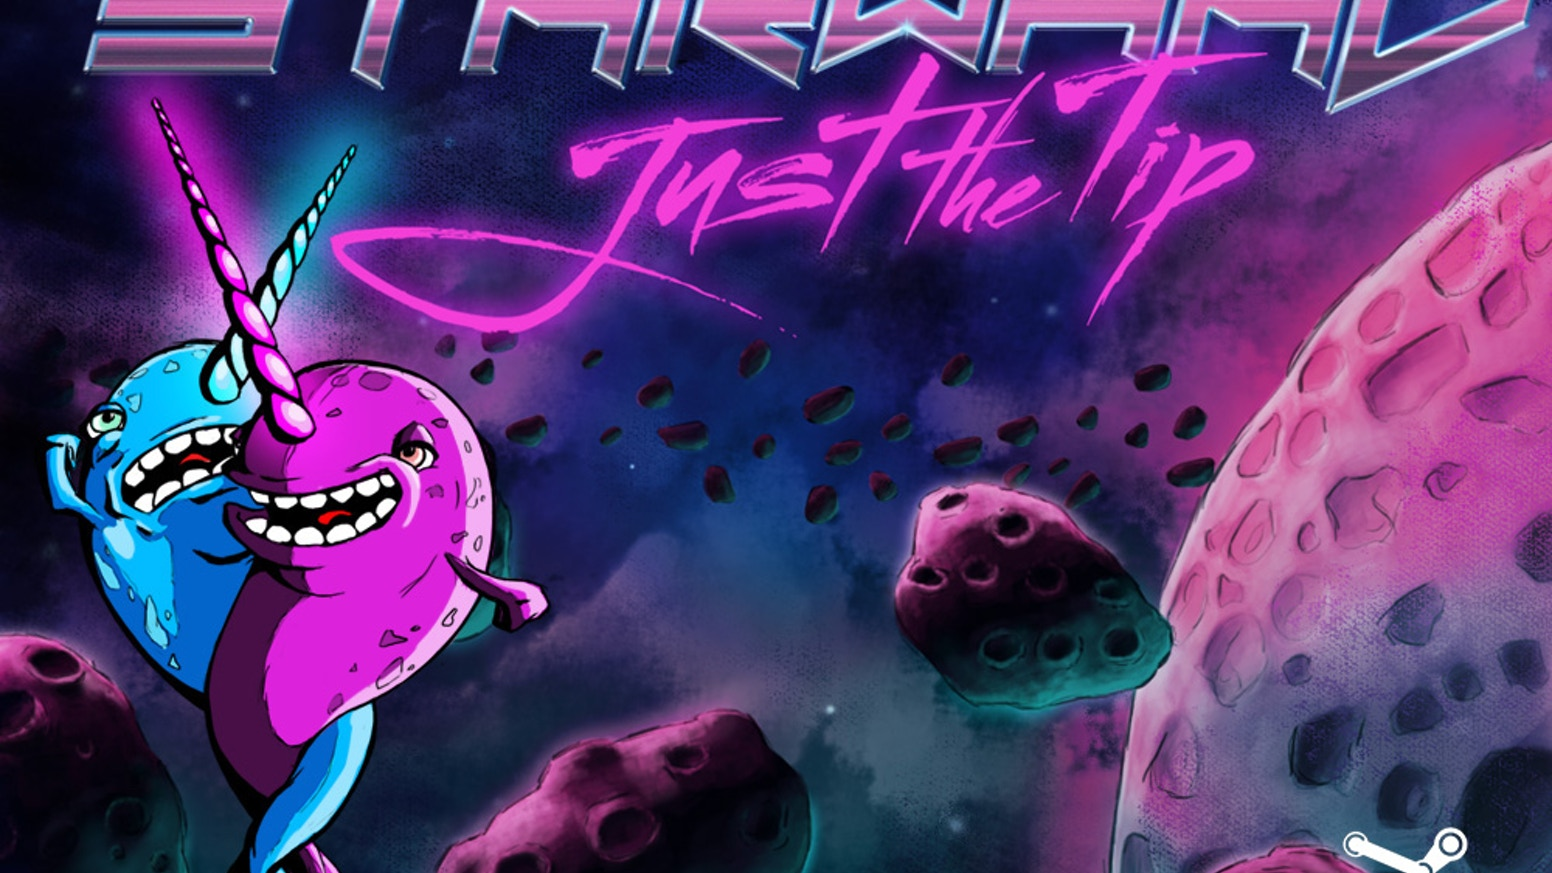 Retro, epic narwhal battle in space! The heart-piercing action is furious and unrelenting. STARWHAL will change your life.